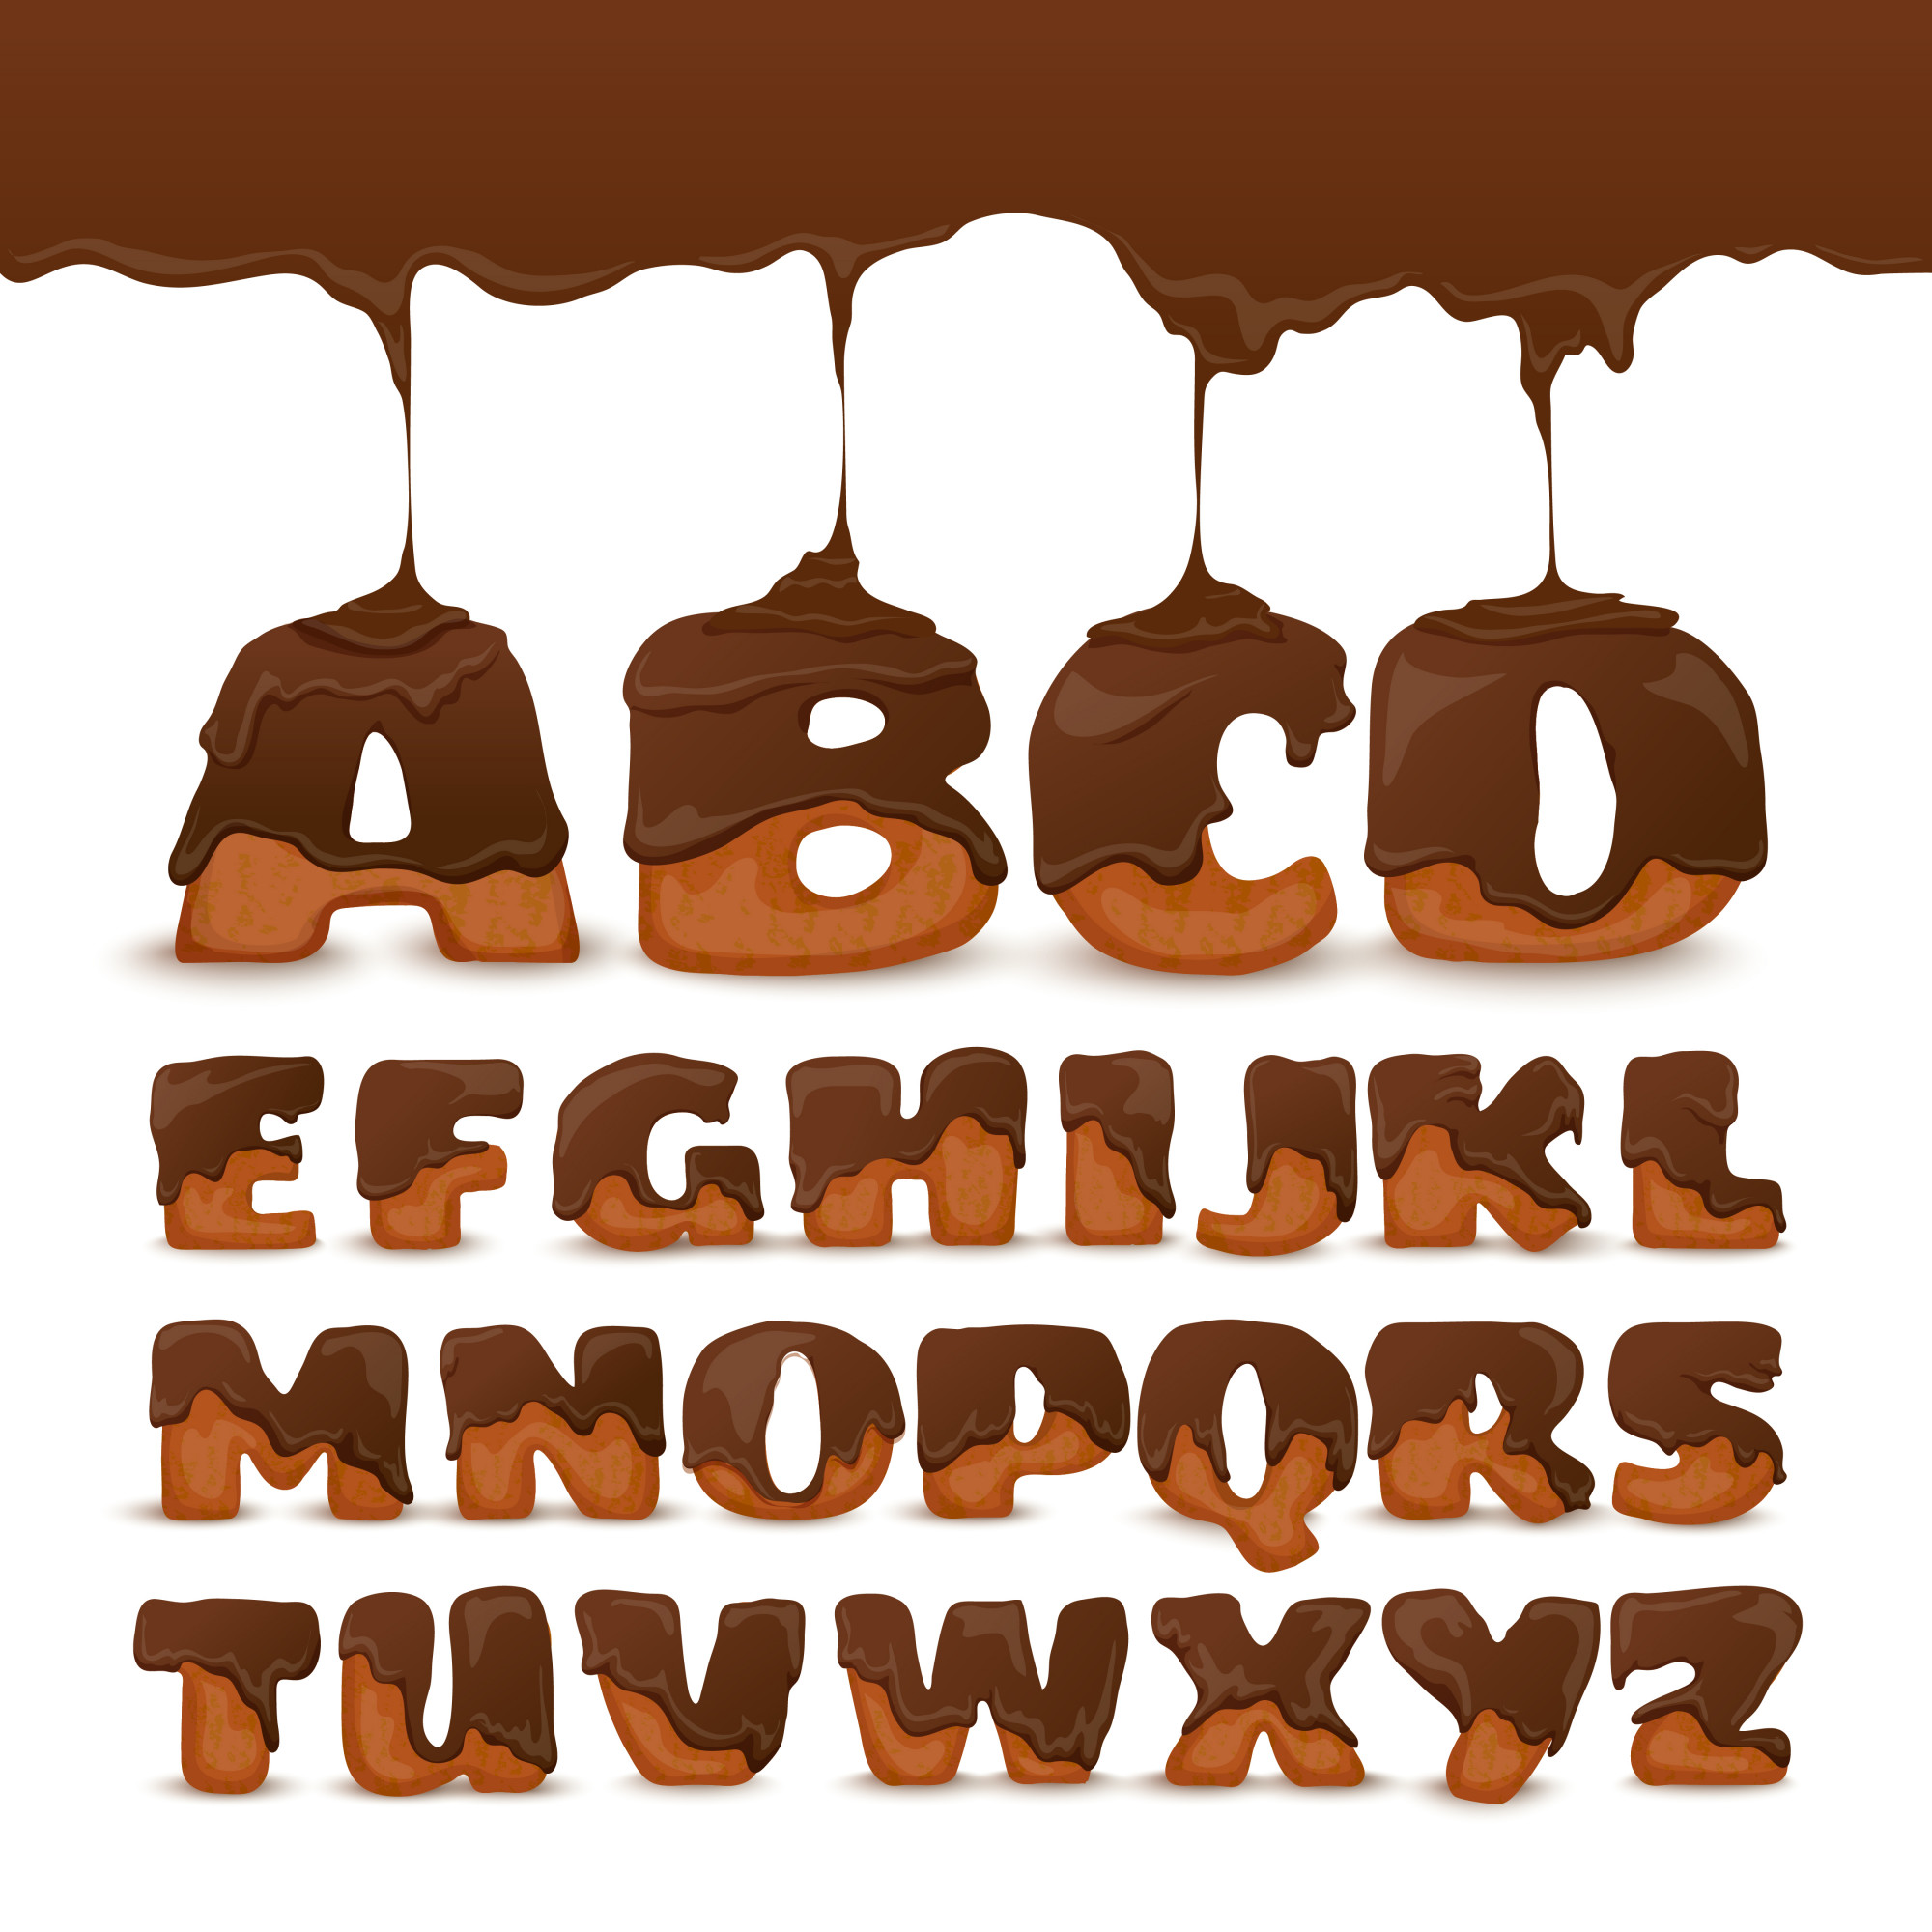 Melting Chocolate  Alphabet Cookies Collection Poster